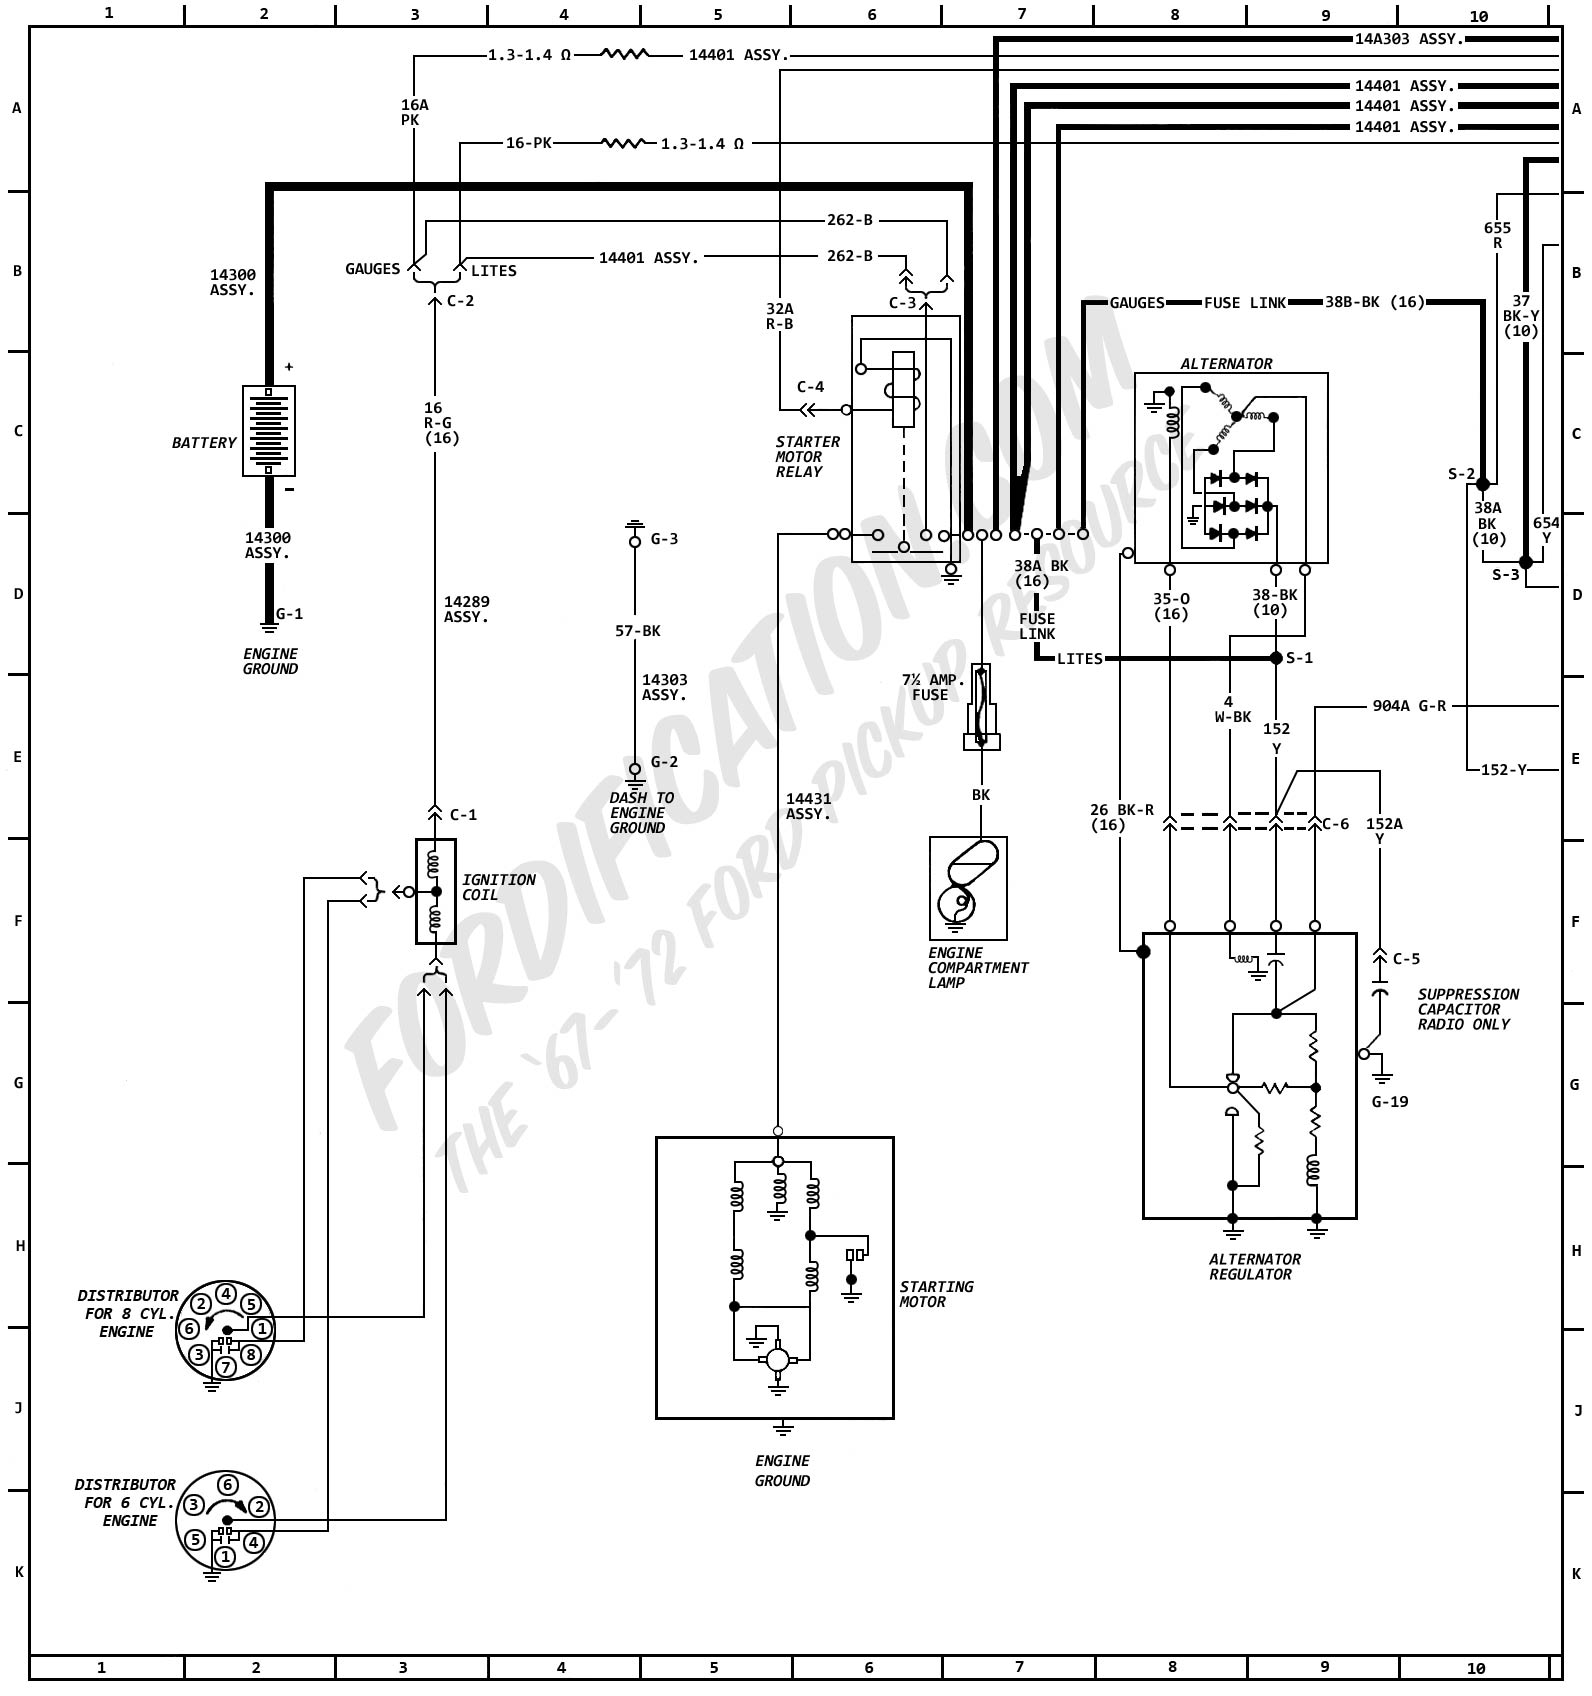 F250 Camper Wiring Data Diagram Schema Schematic Ford Diagrams Golf Cart